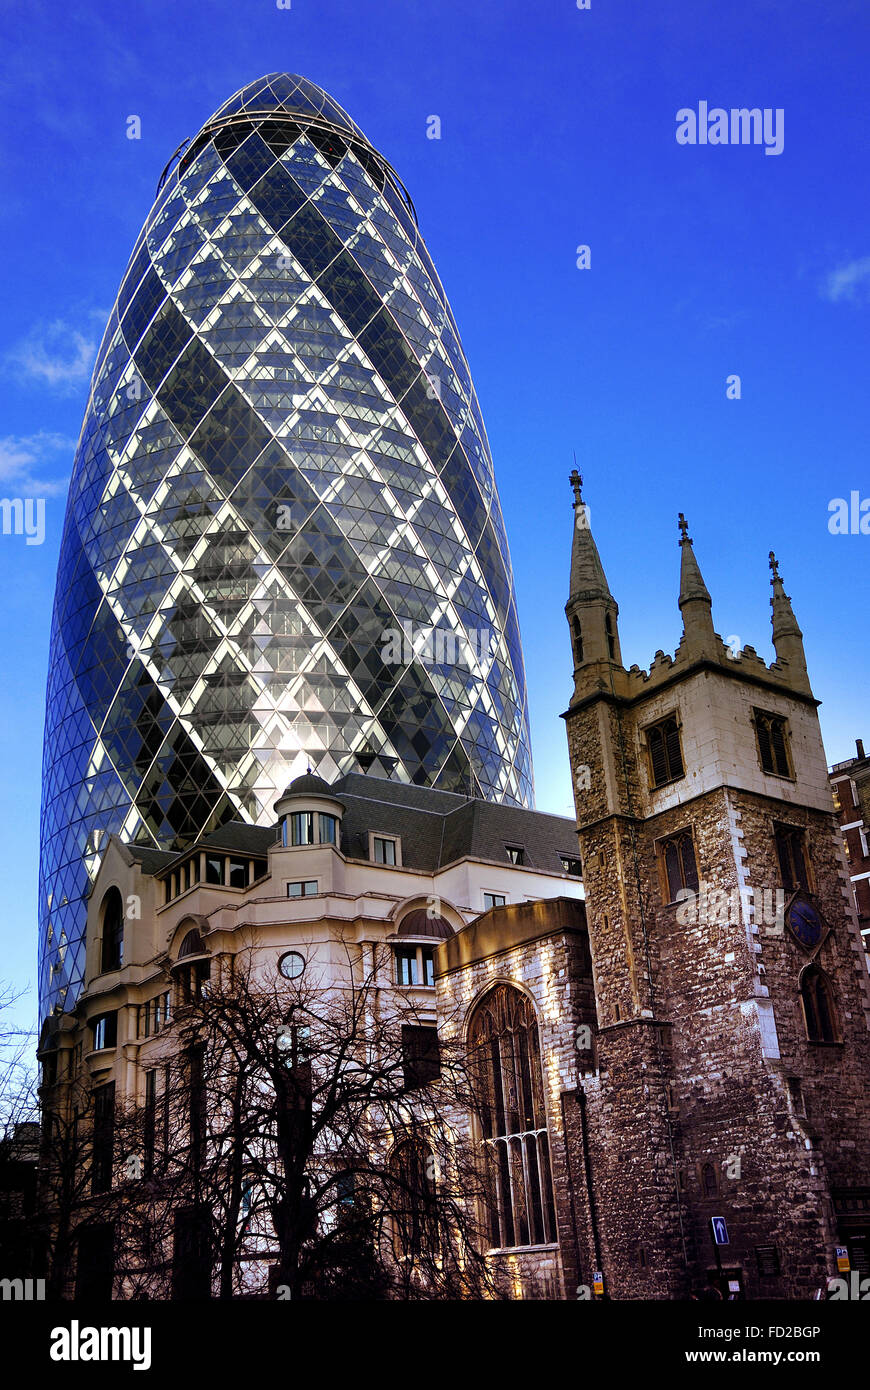 Swiss Re Building  'The Gherkin' , London financial district - Stock Image